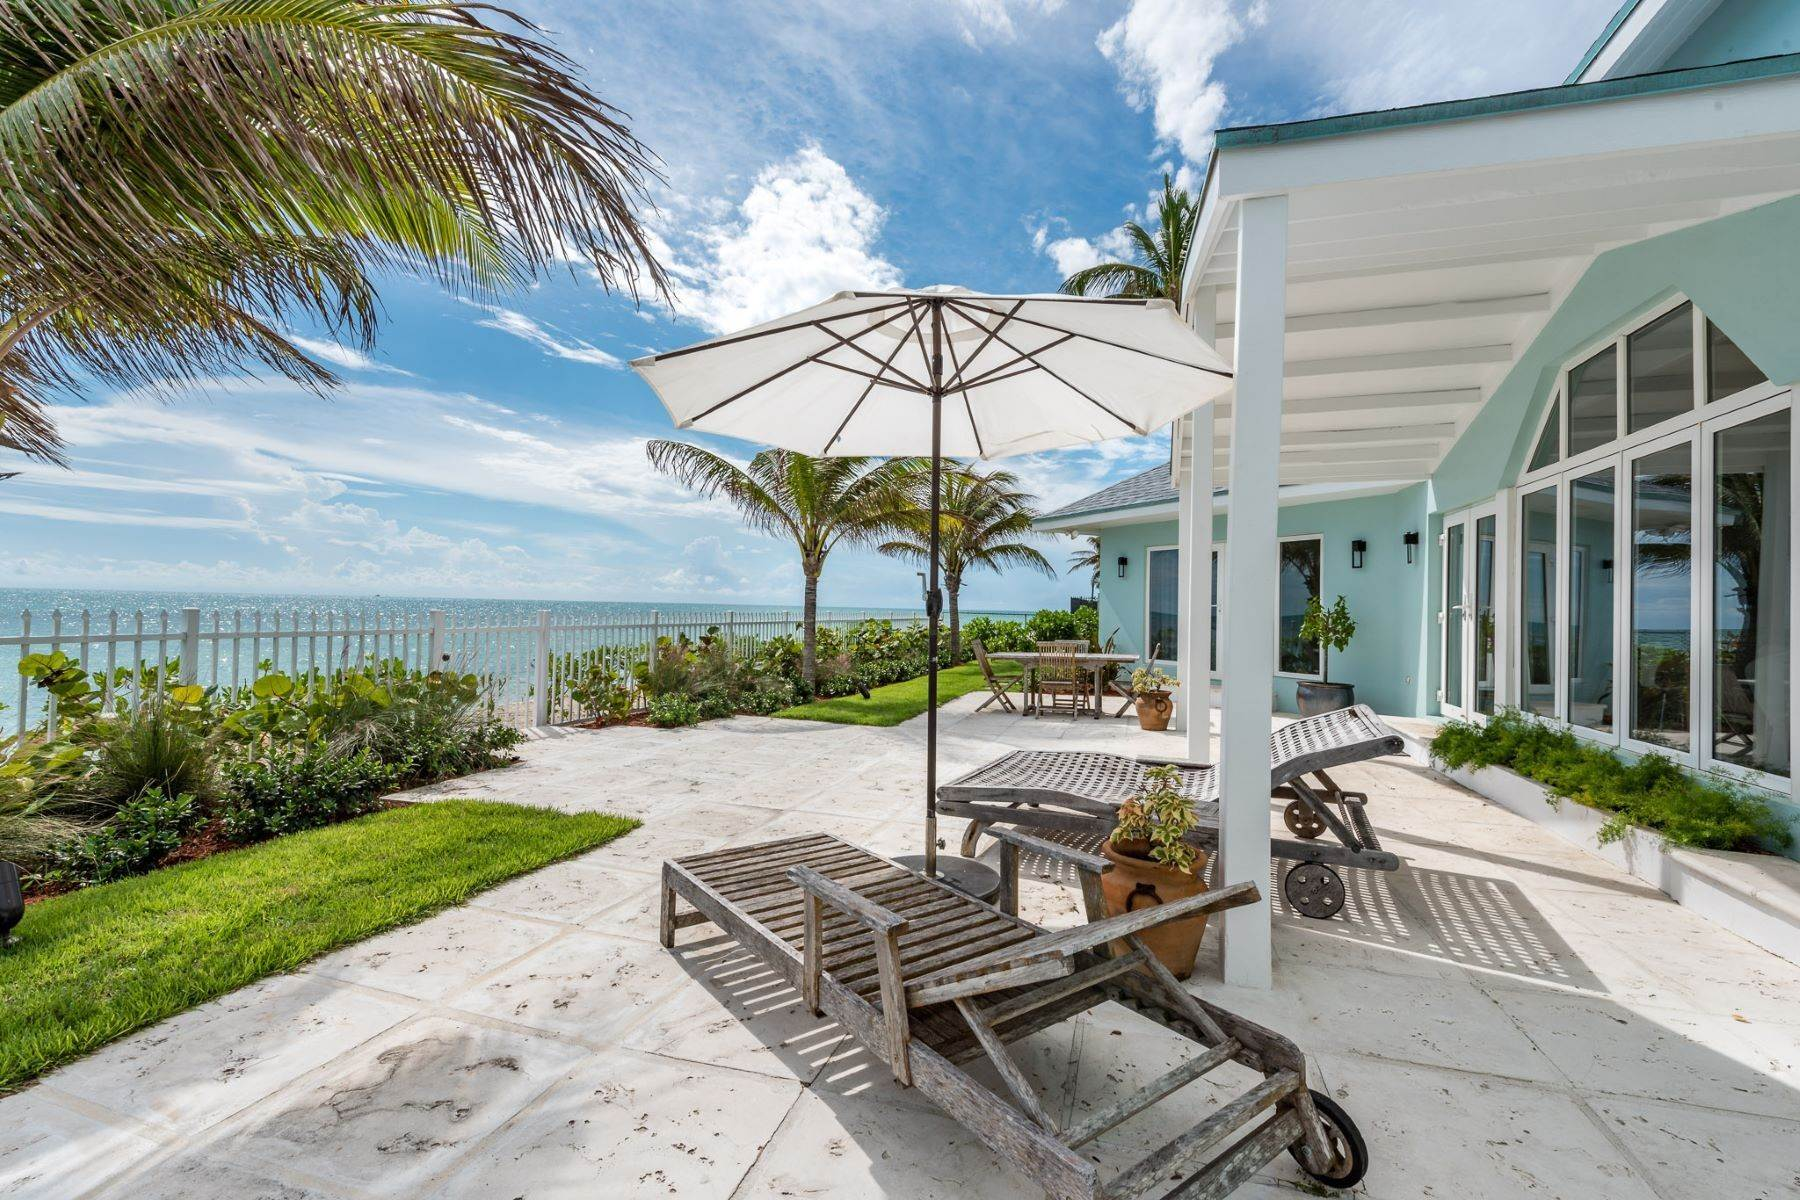 Single Family Homes for Sale at Sugar Plum, Coral Harbour Coral Harbour, Nassau And Paradise Island Bahamas